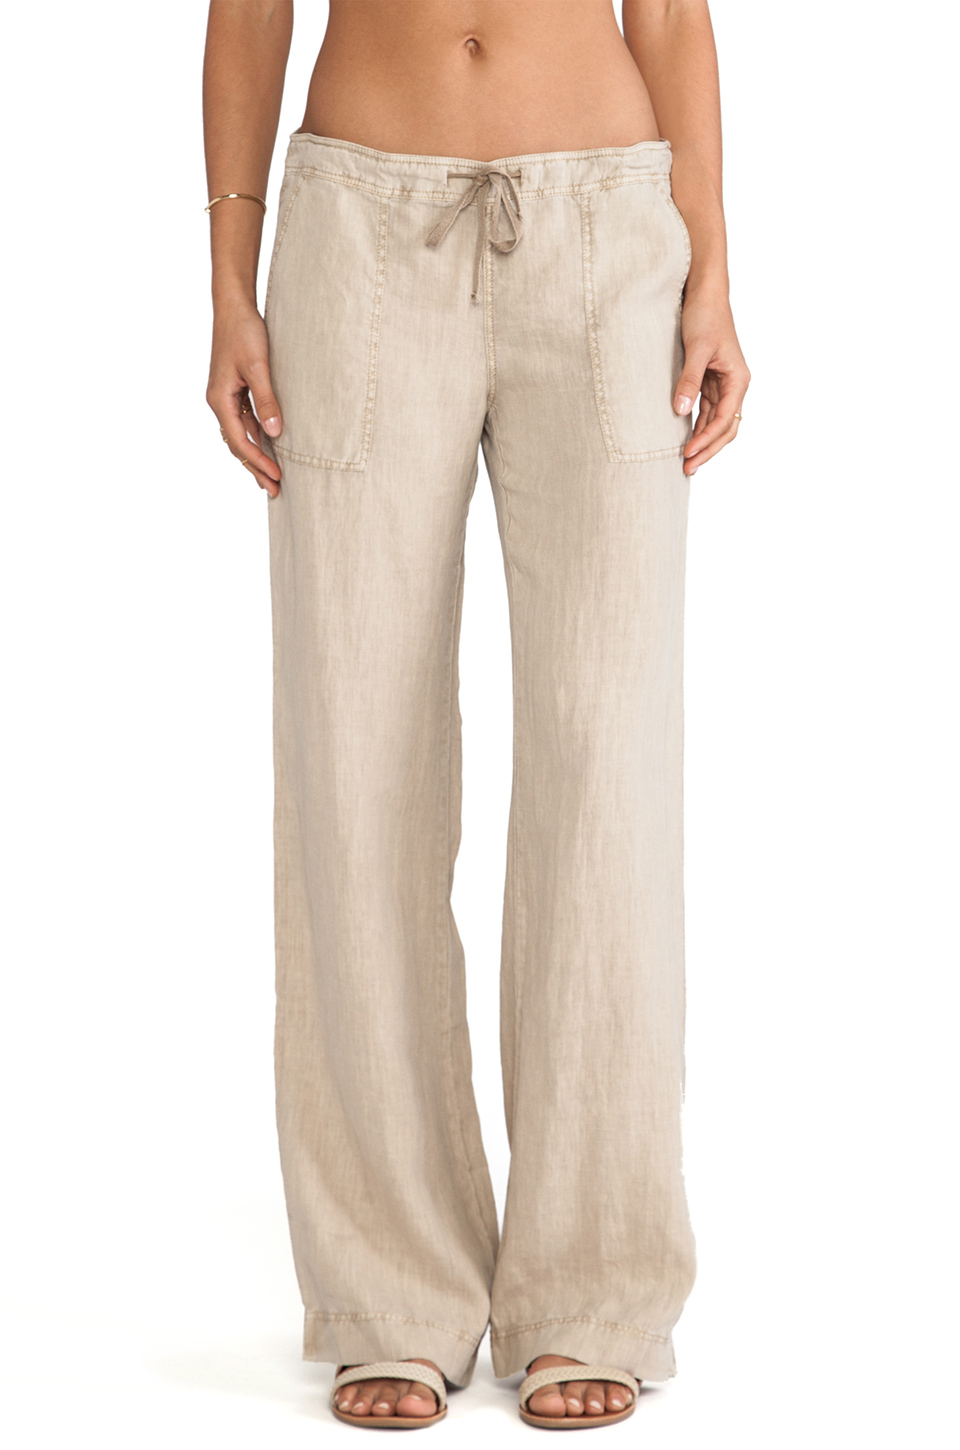 Find great deals on eBay for drawstring linen pants women. Shop with confidence.